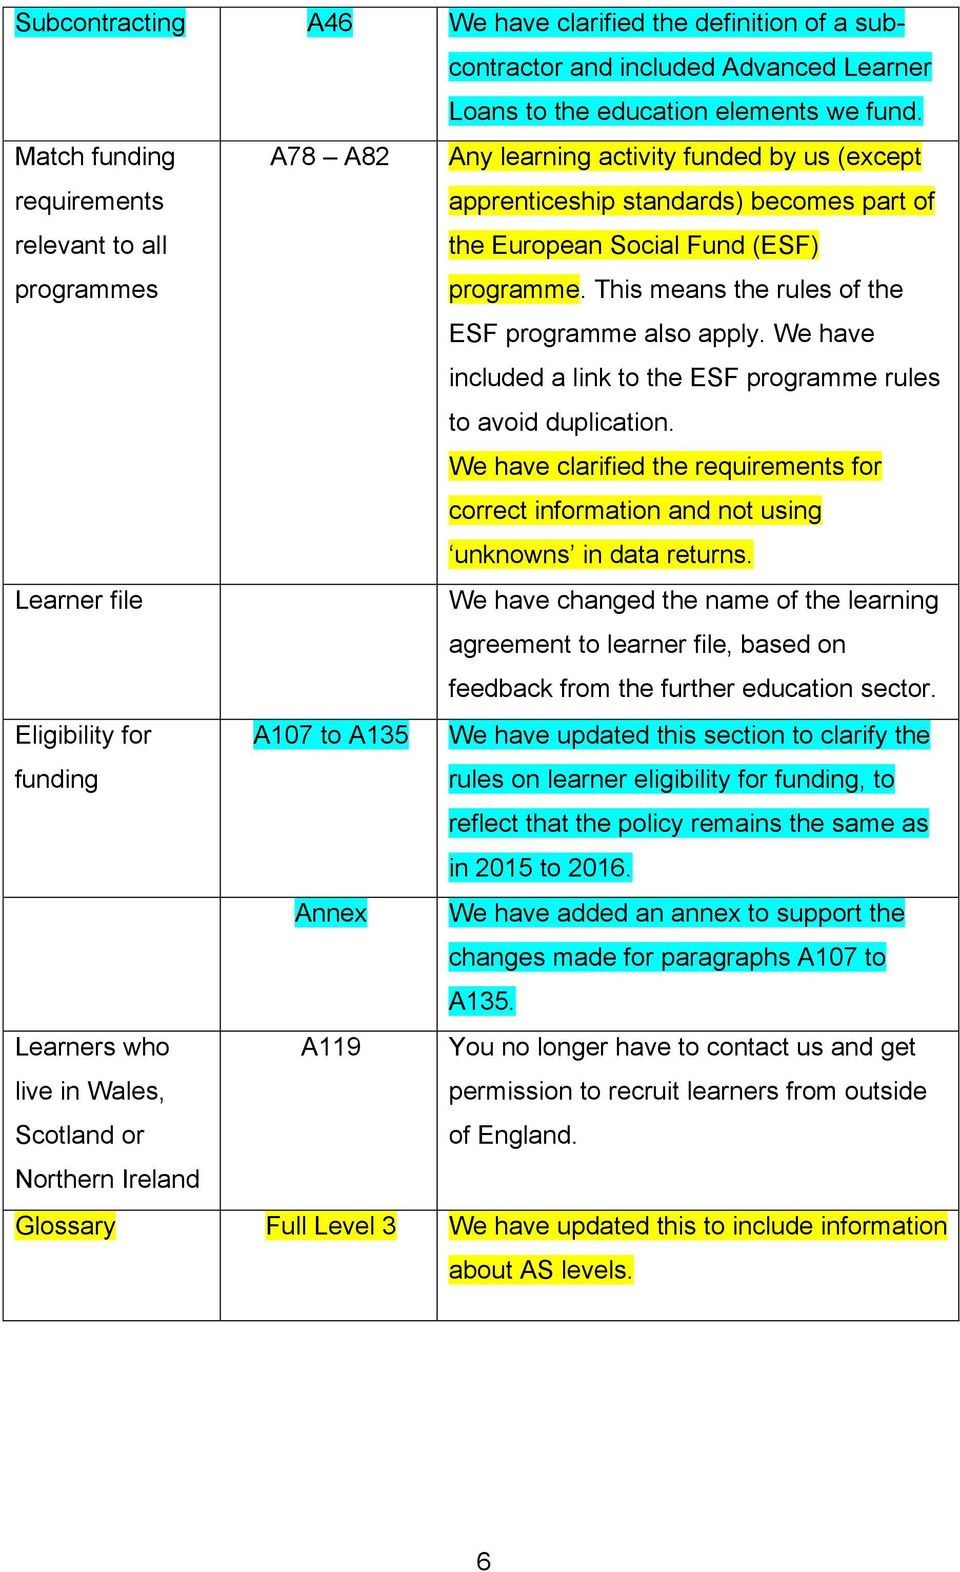 This means the rules of the ESF programme also apply. We have included a link to the ESF programme rules to avoid duplication.